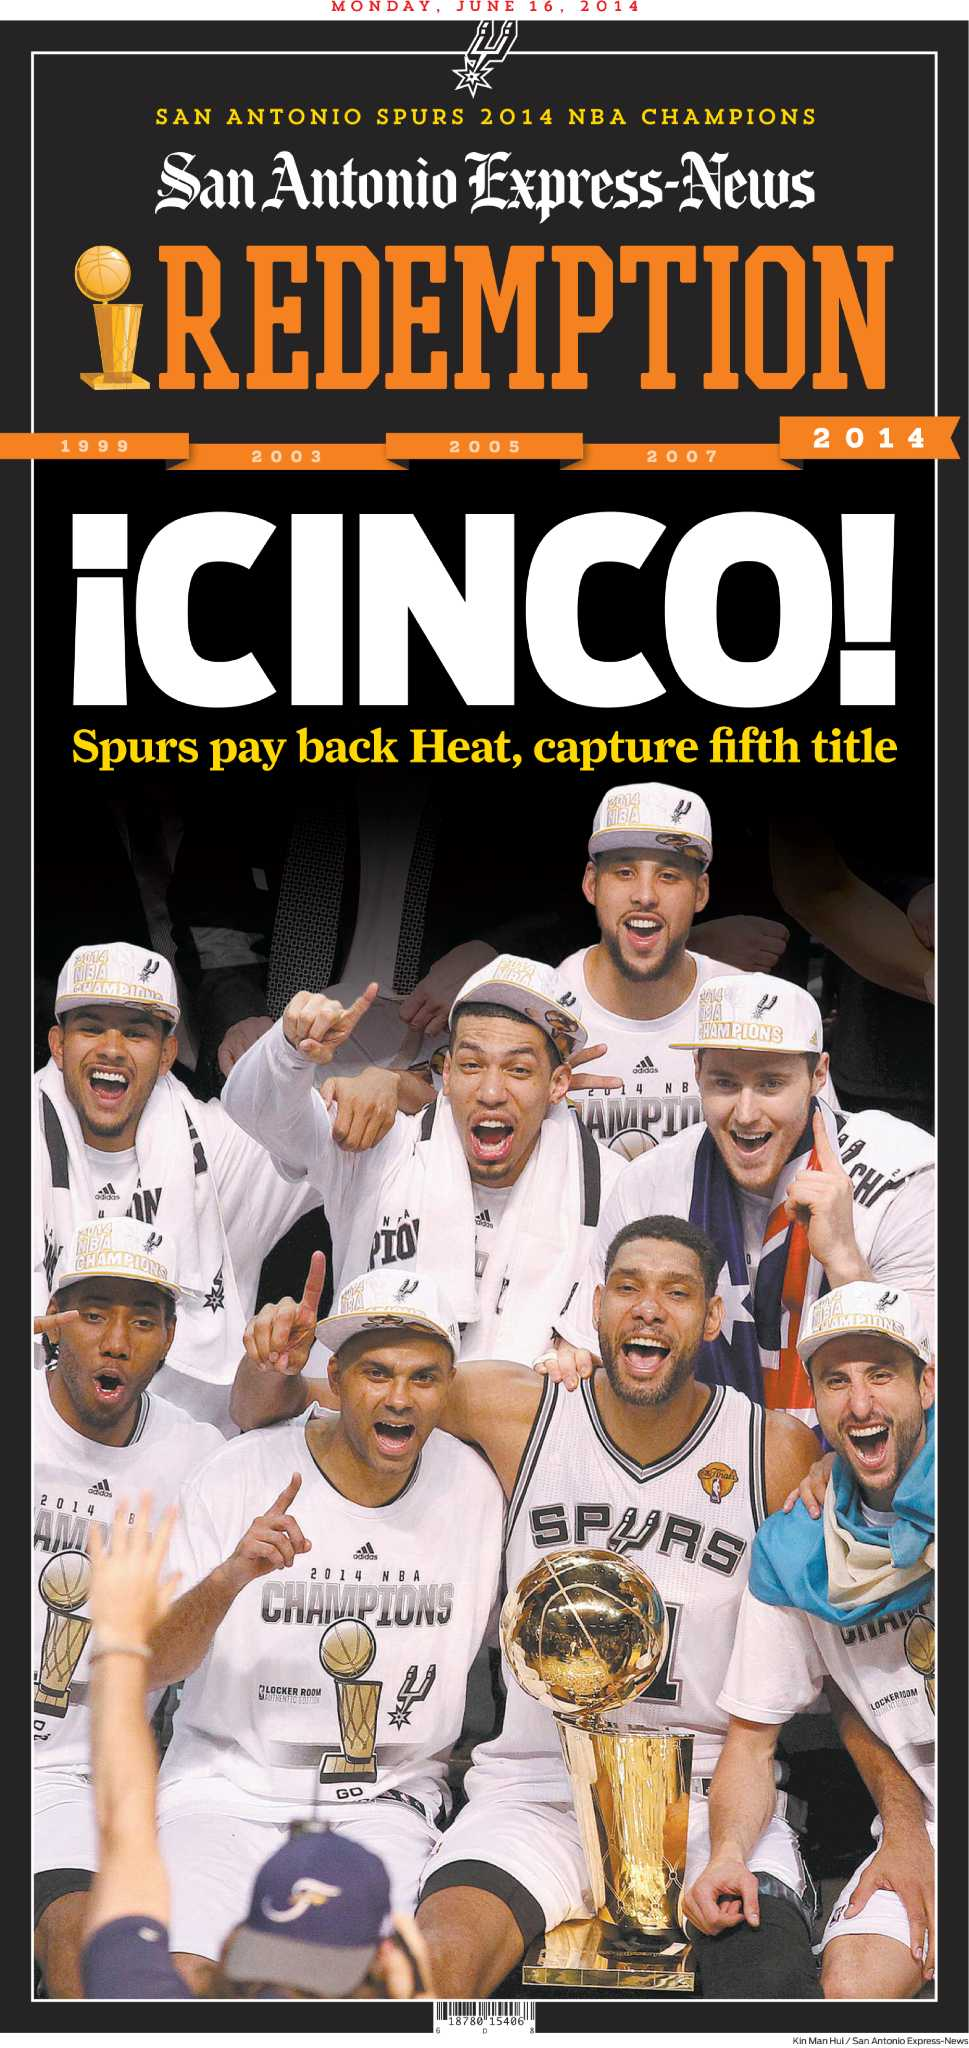 Reprints Of Spurs Win To Be Sold Tuesday San Antonio